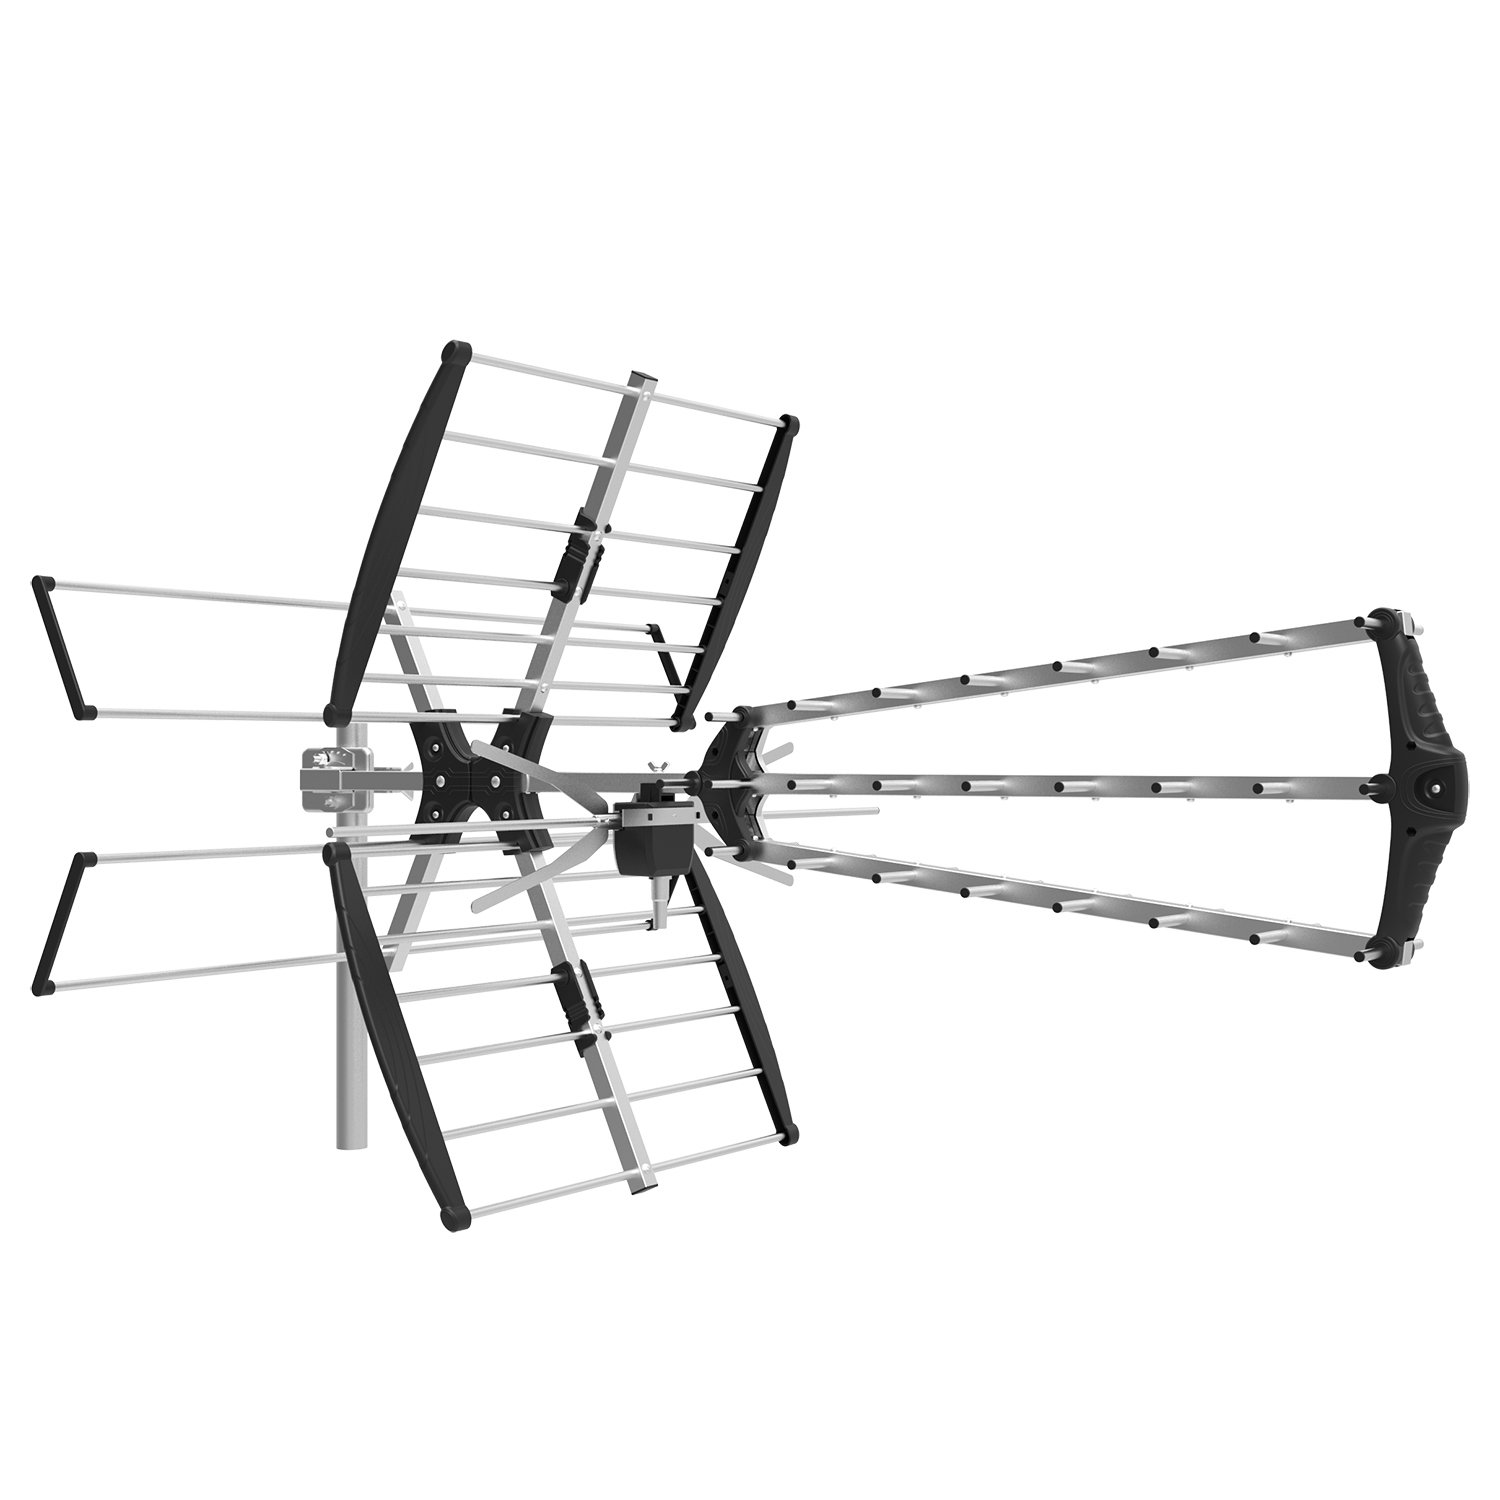 Amazon.com: 1byone Digital Outdoor / Roof HDTV Antenna, High Gain VHF / UHF  Combo TV Antenna, 75 Miles Range Extremely High Performance TV Antenna: ...